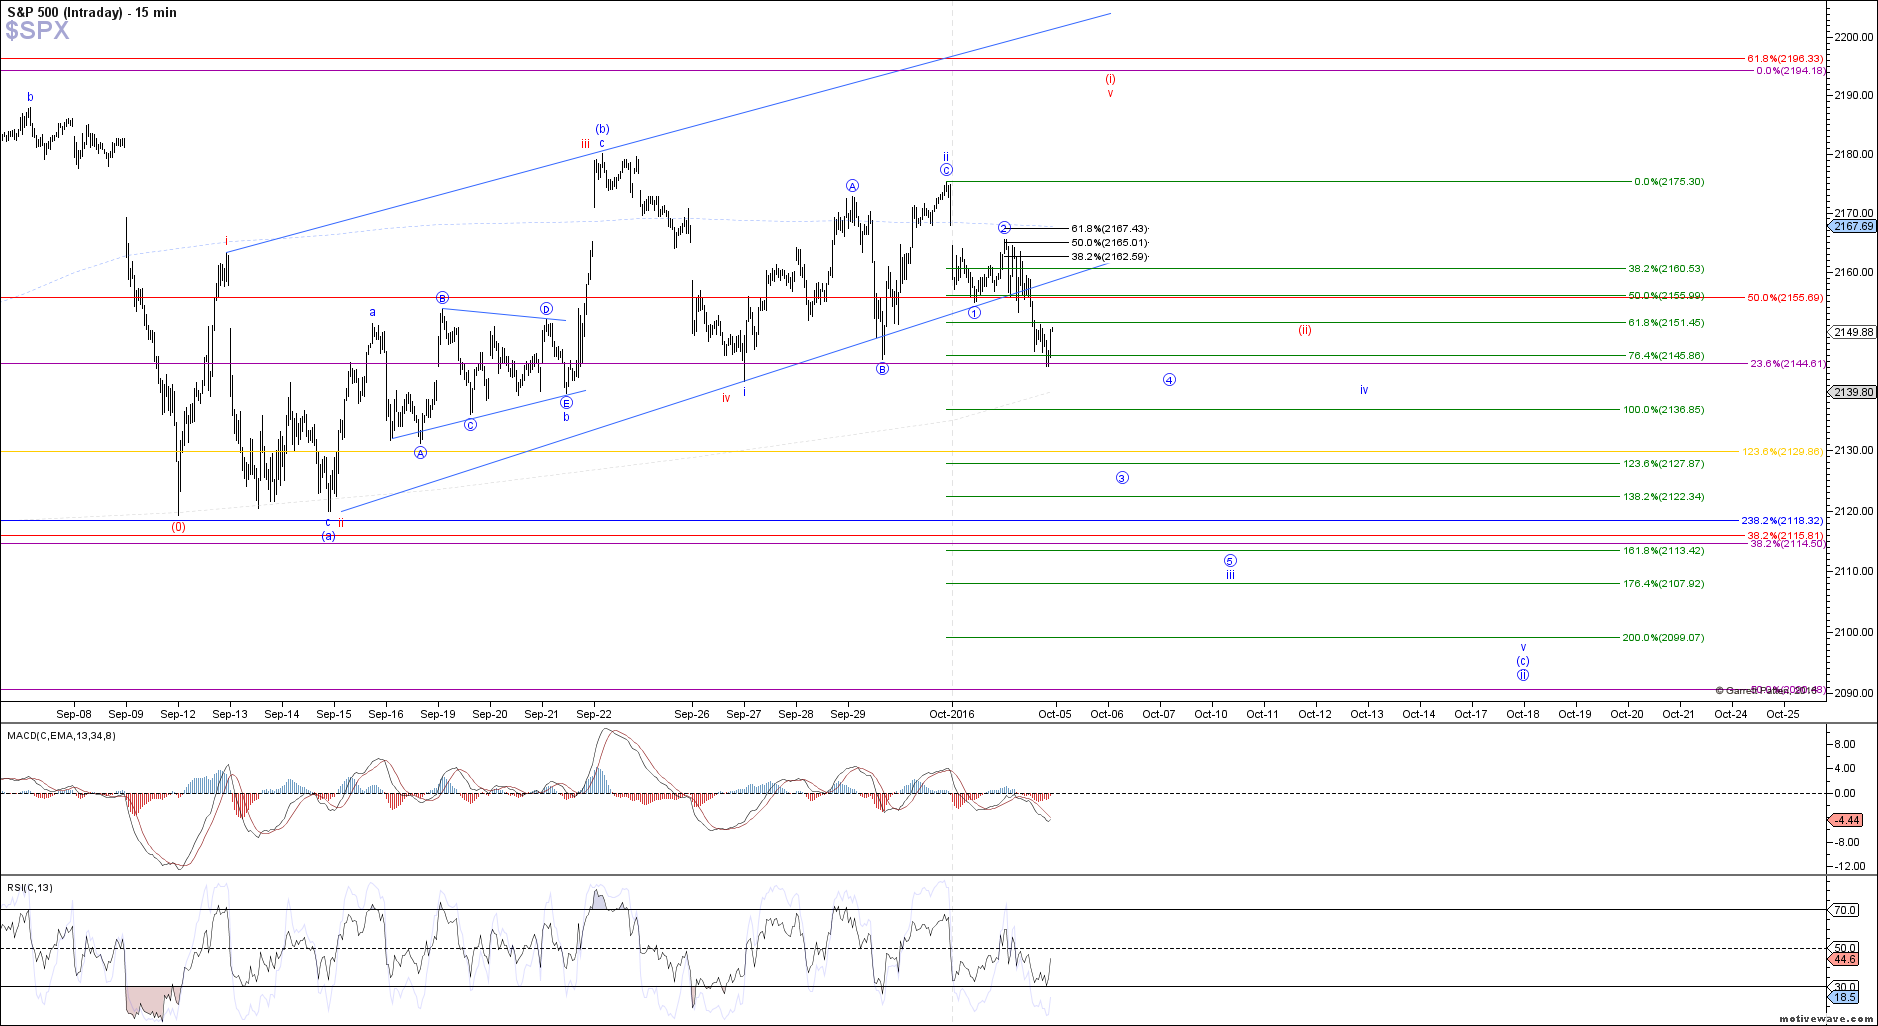 $SPX - Intraday - Oct-04 1331 PM (15 min)